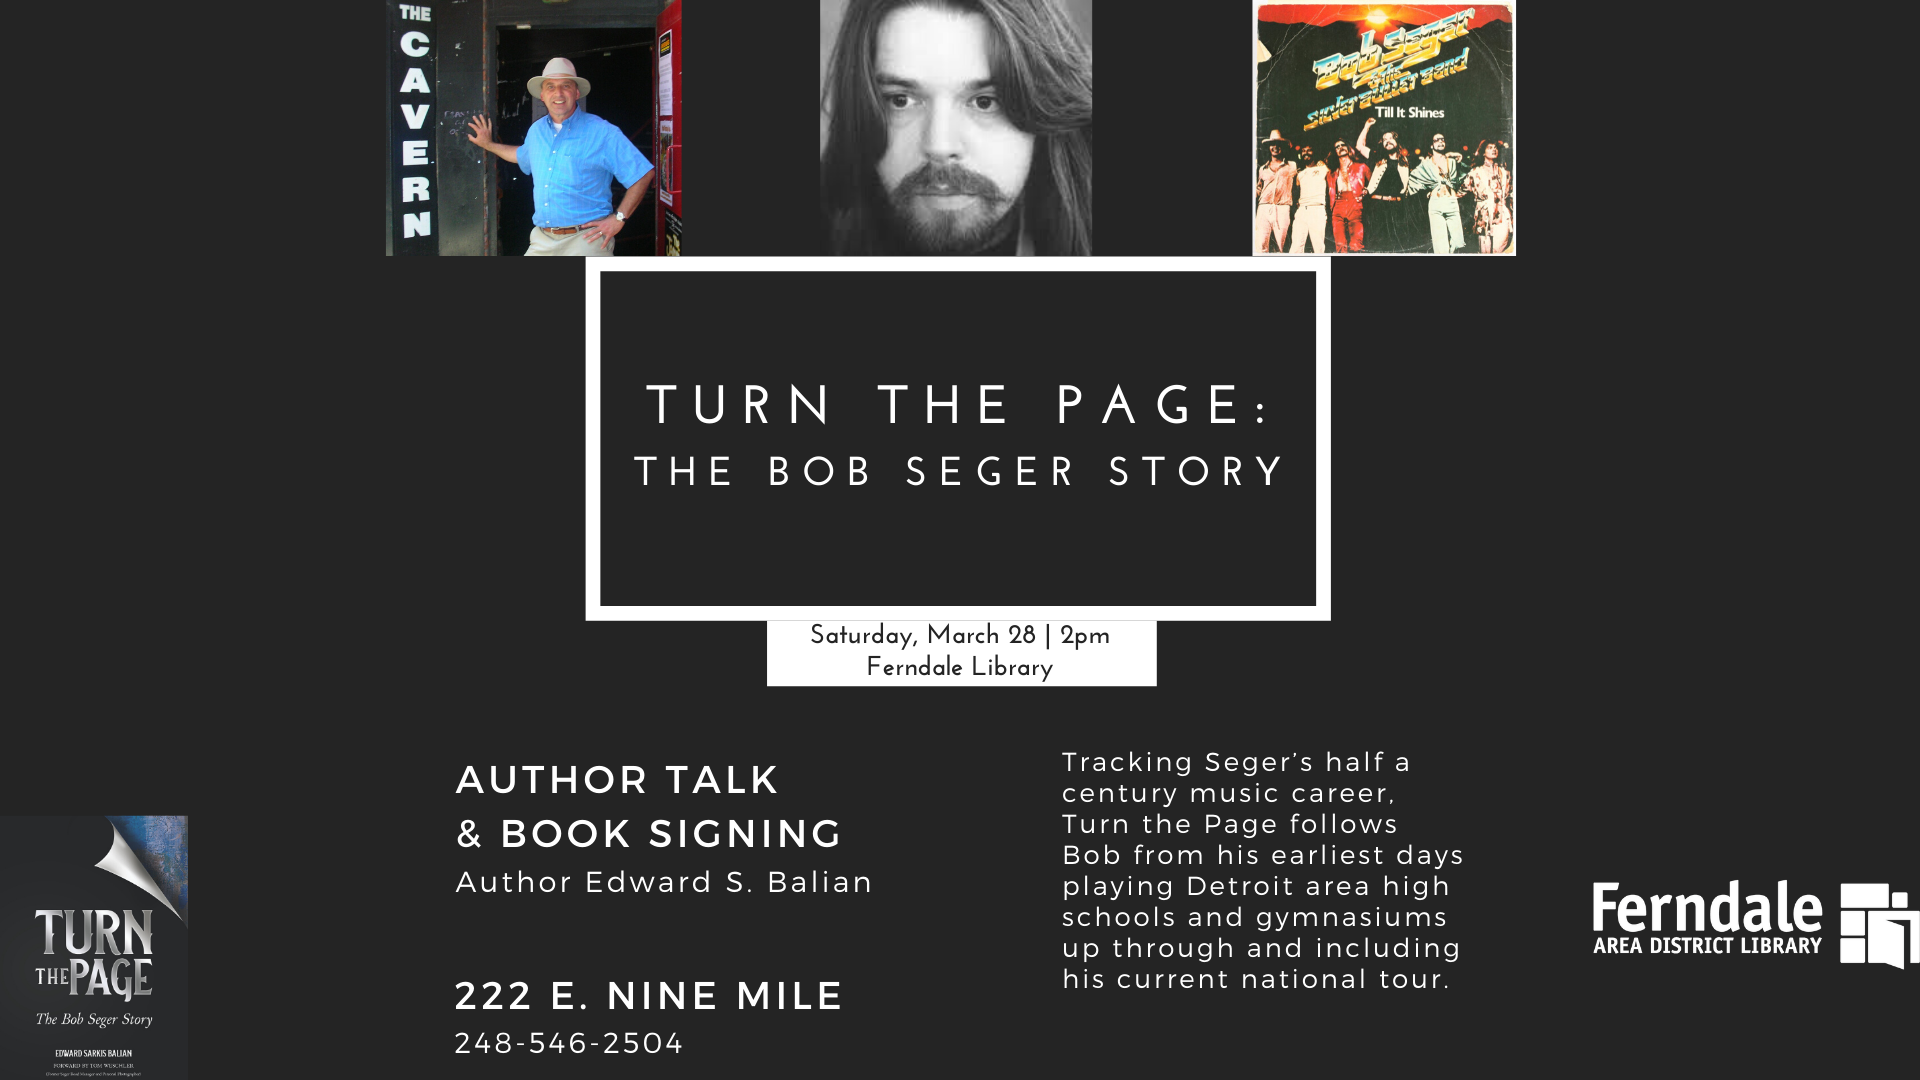 CANCELED- Turn the Page: The Bob Seger Story